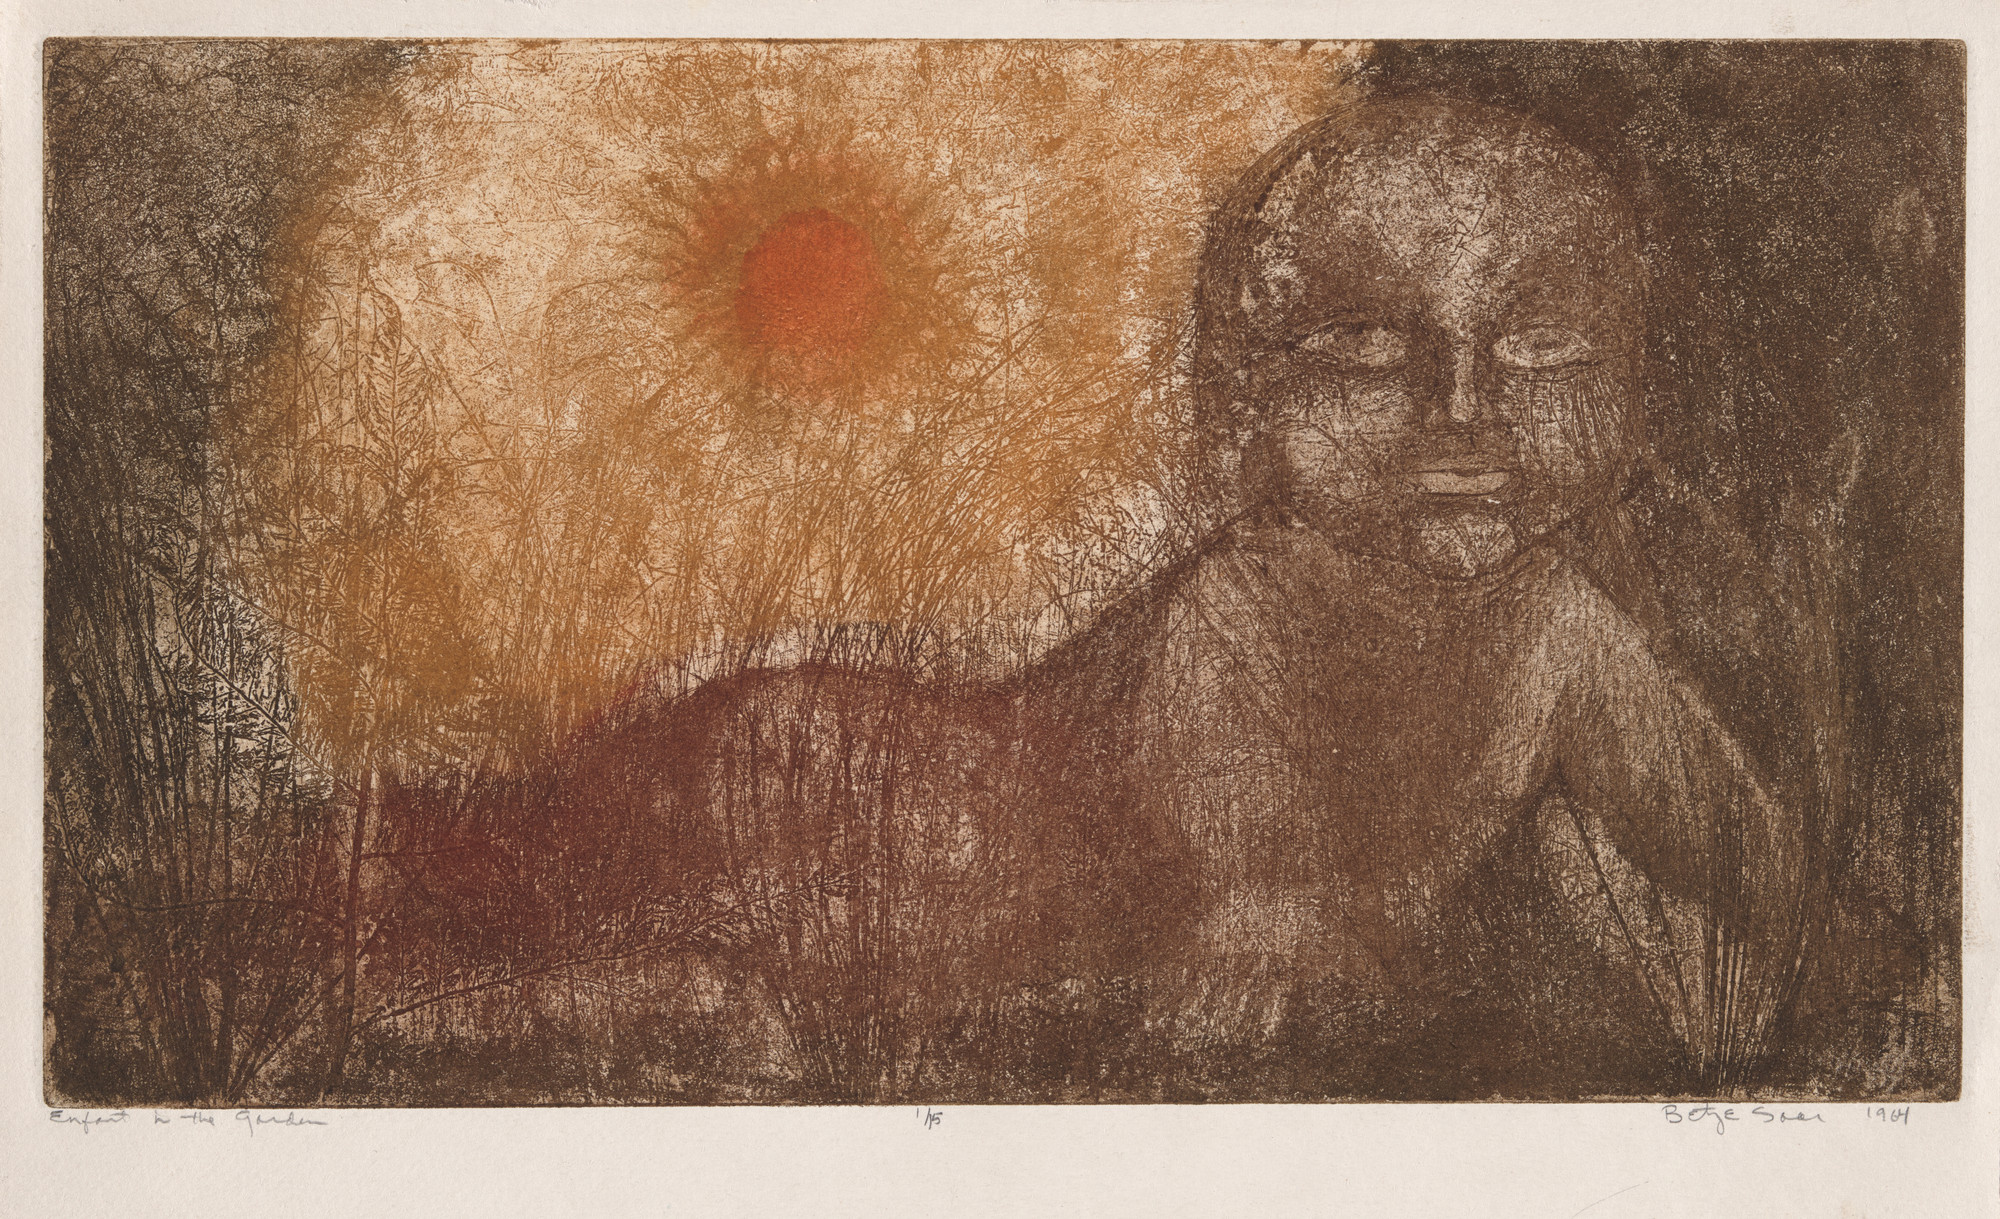 Betye Saar. Enfant in the Garden. 1964